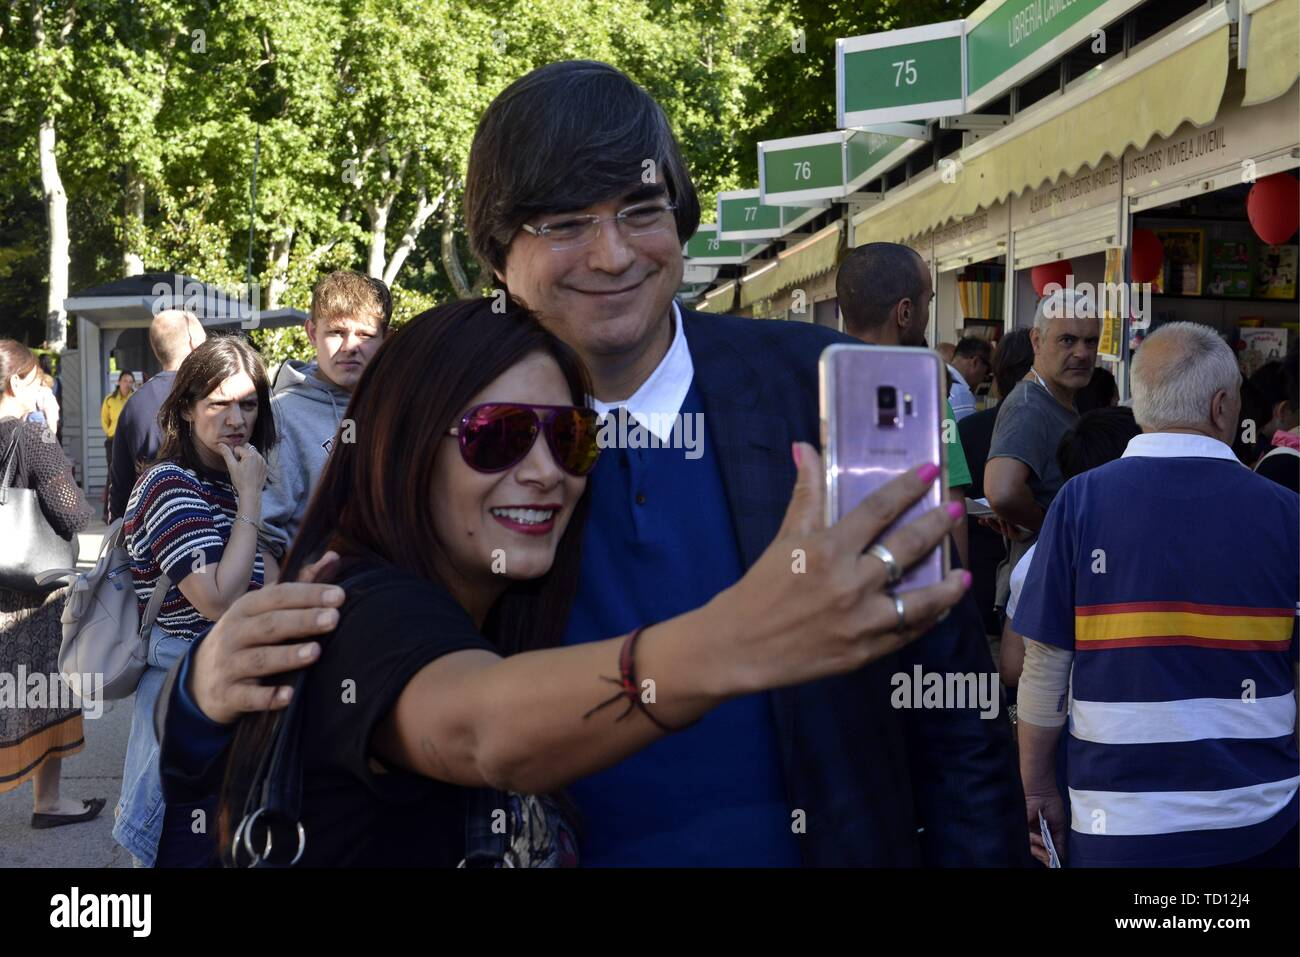 Page 3 Bayly High Resolution Stock Photography And Images Alamy Bayly se molestó cuando poleo calificó de hombre. https www alamy com madrid spain 11th june 2019 the writer jaime bayly during the book fair in madrid tuesday june 11 2019 credit cordon pressalamy live news image248959708 html